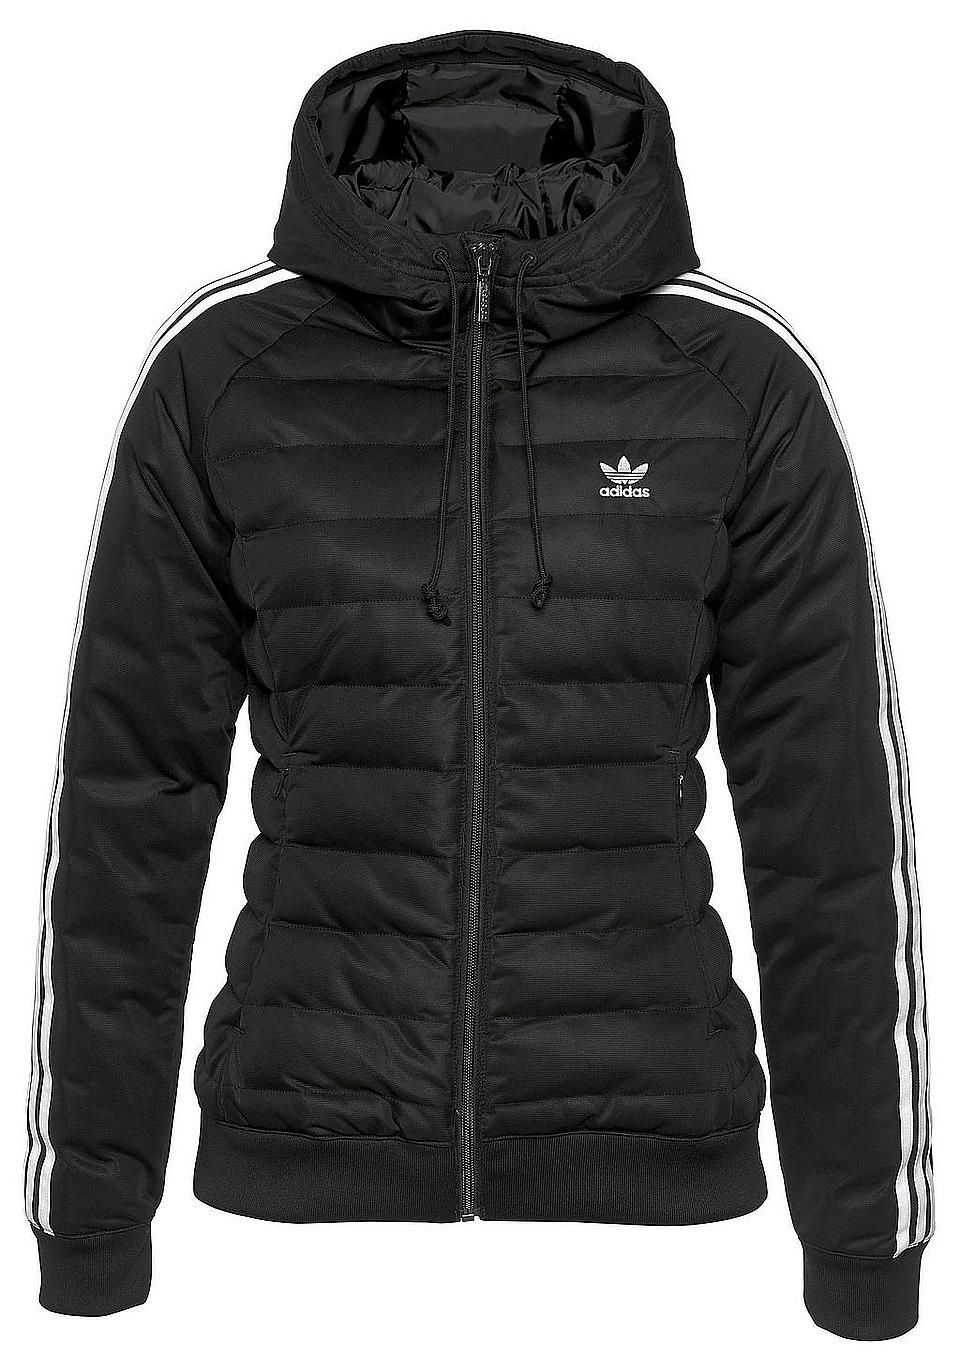 adidas Originals Steppjacke »SLIM JACKET« kaufen in 2019